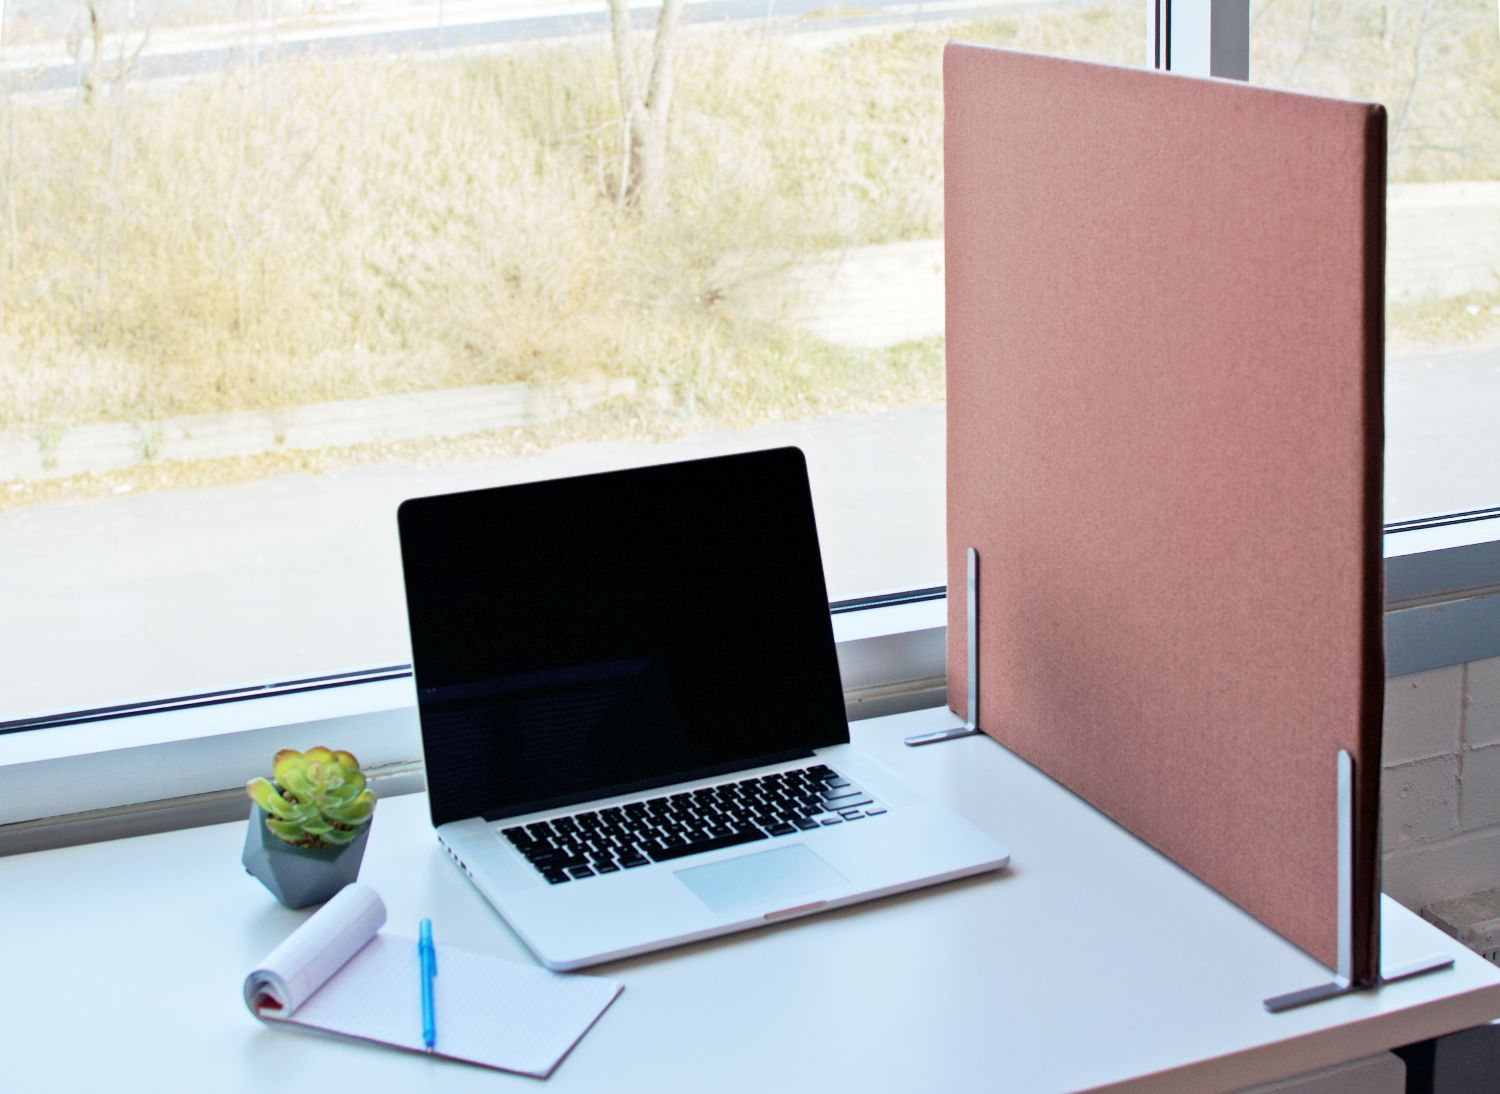 Improve Employee Concentration And Productivity By Providing Premium Privacy Work Fort Privacy Screens Do The Trick Privacy Panels Diy Desktop Sound Panel